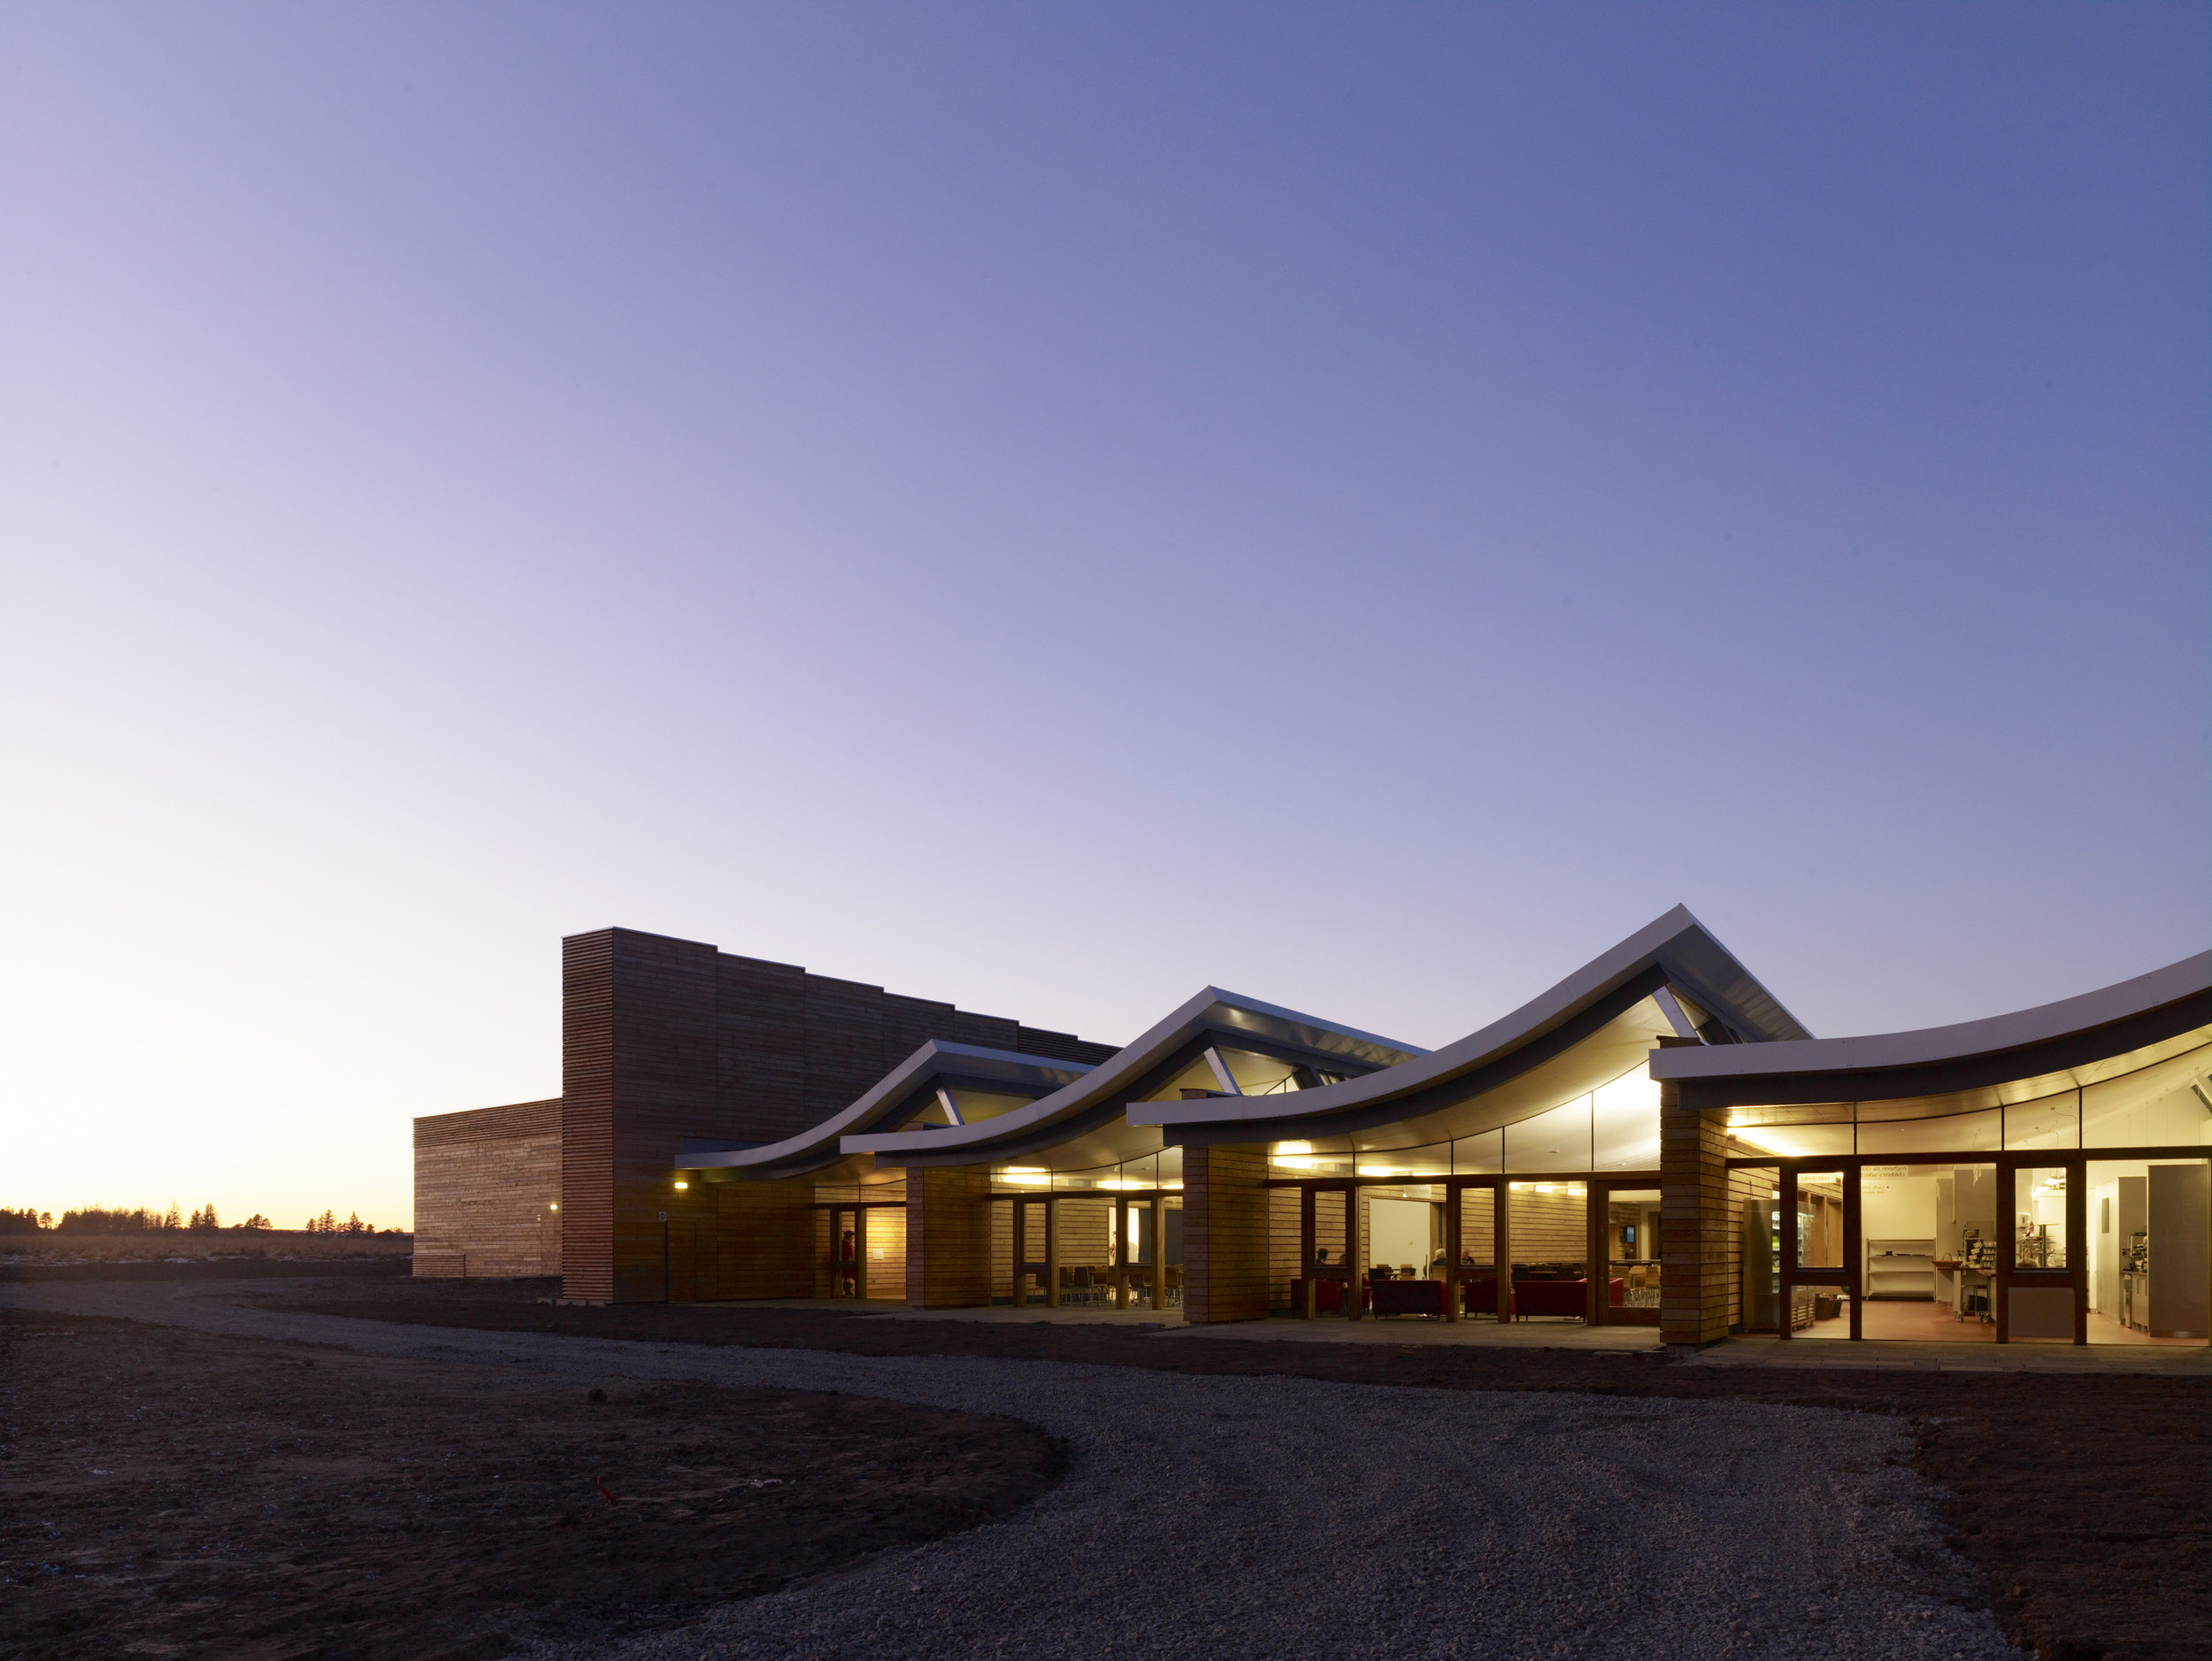 The NTS Culloden Visitor Center. Photo courtesy National Trust for Scotland, Culloden